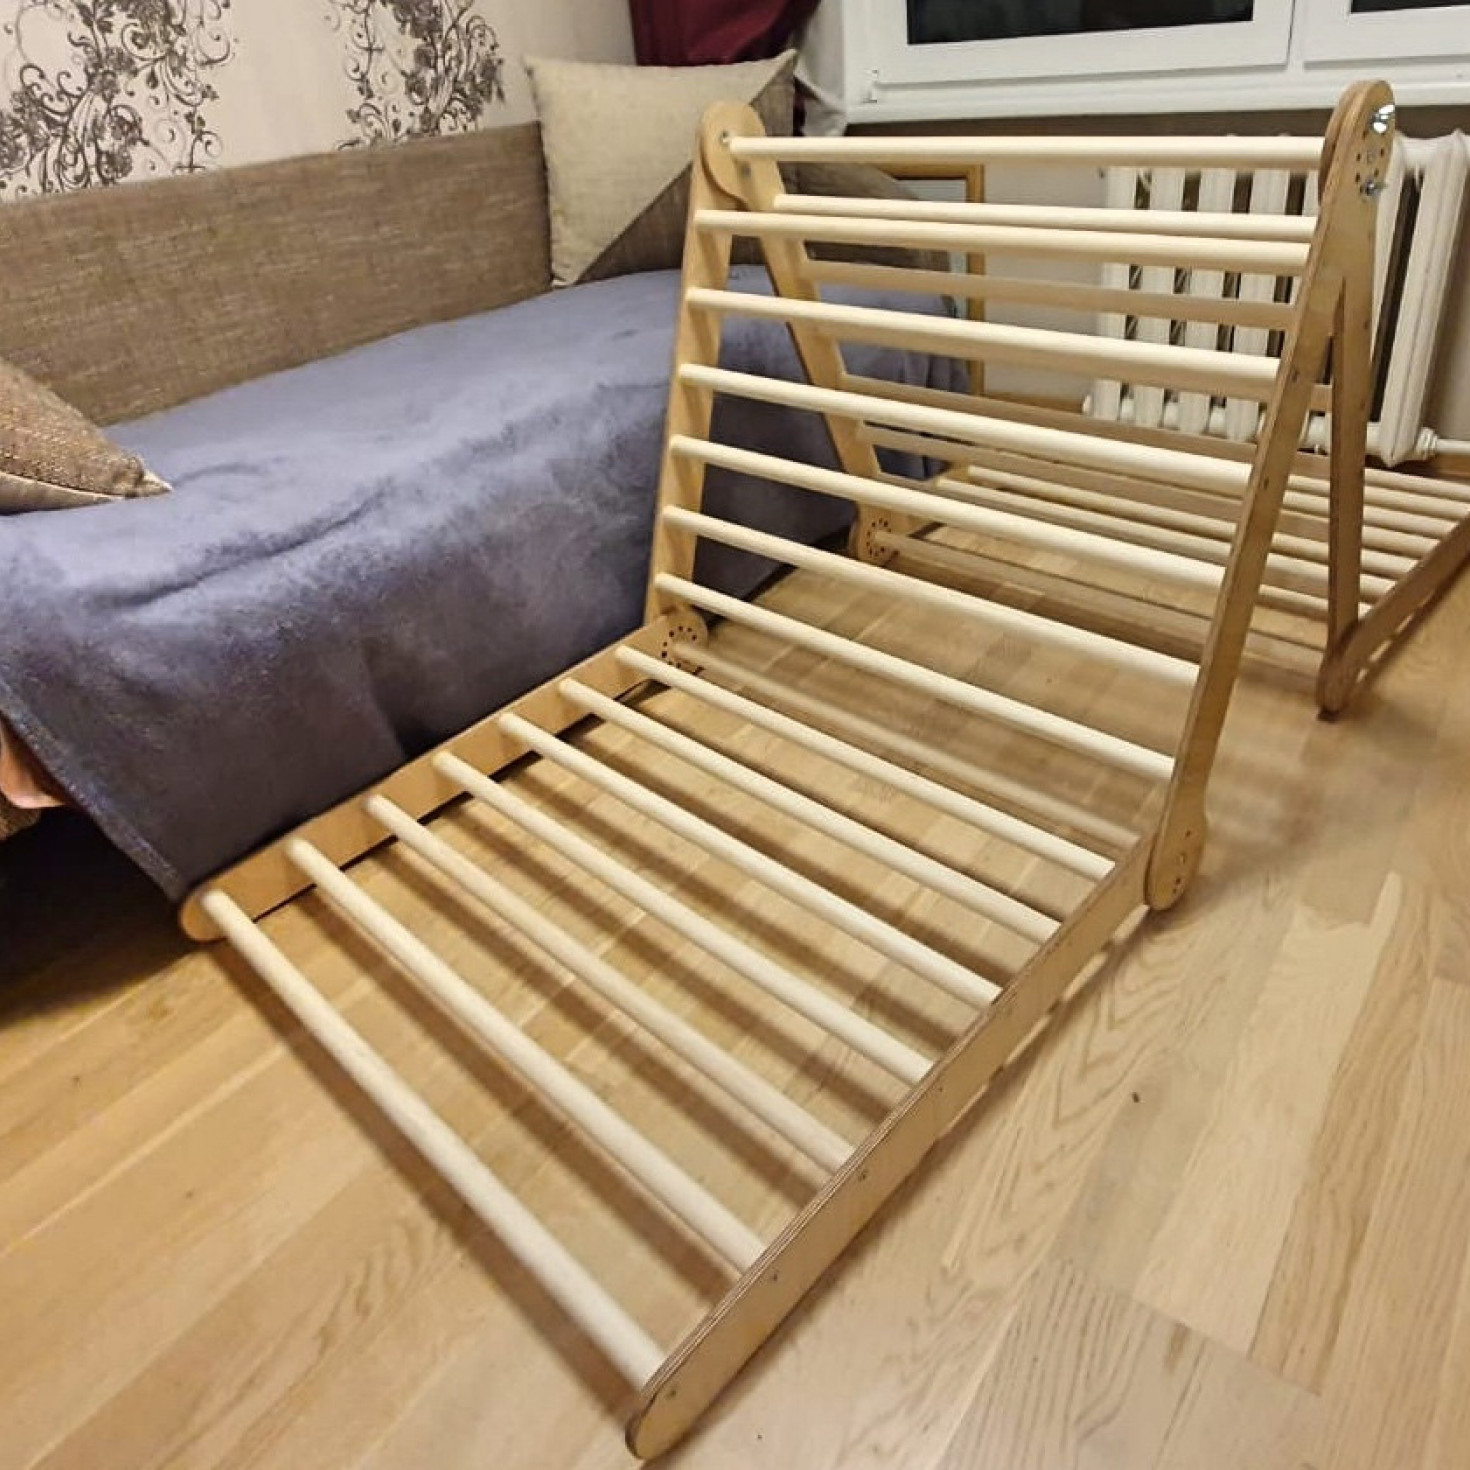 A wooden climbing frame next to a couch